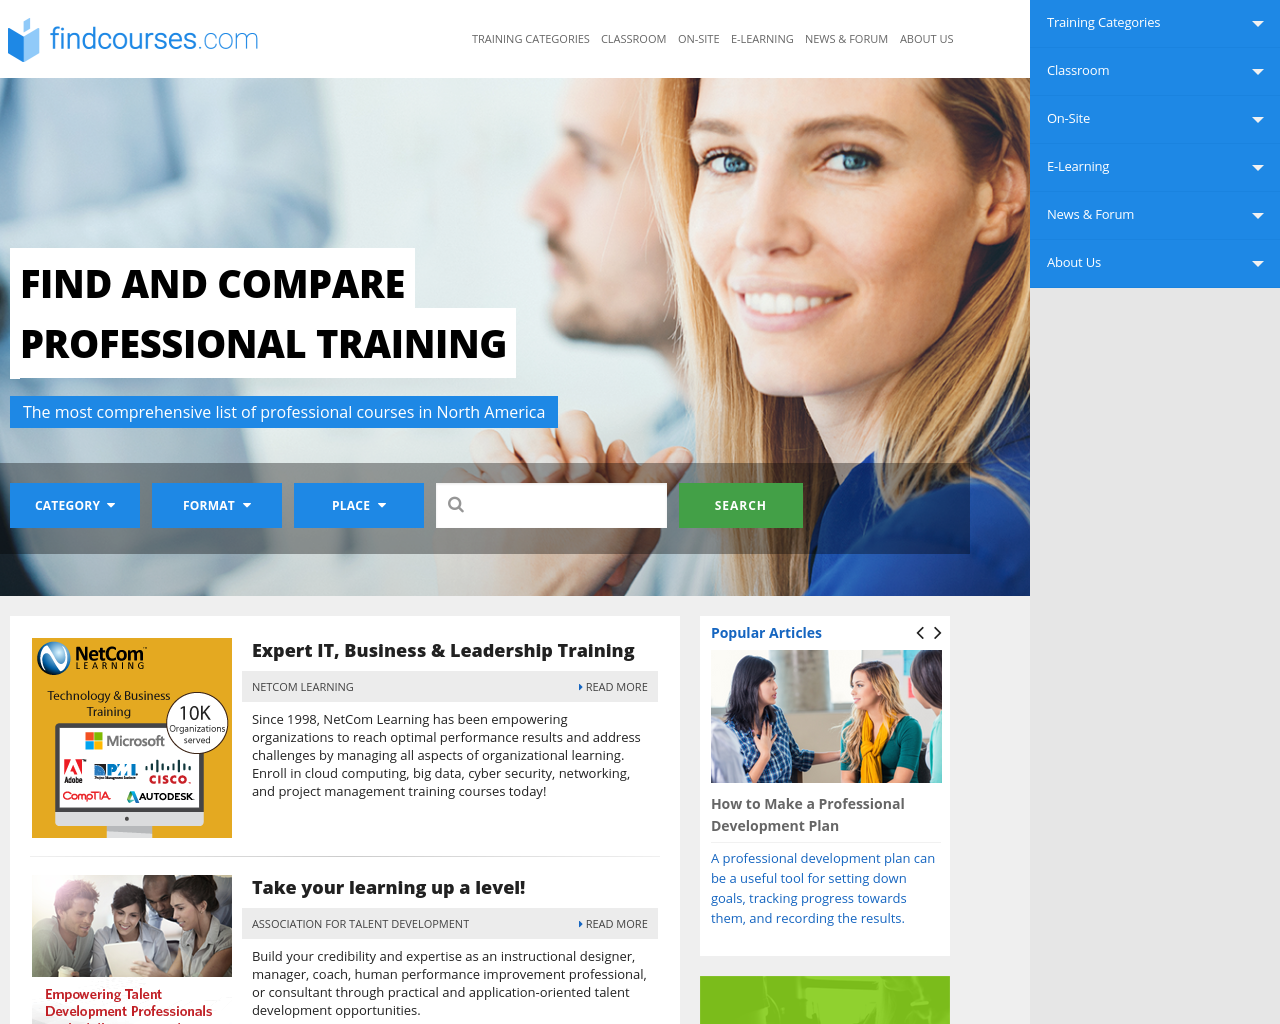 findcourses.com-Advertising-Reviews-Pricing